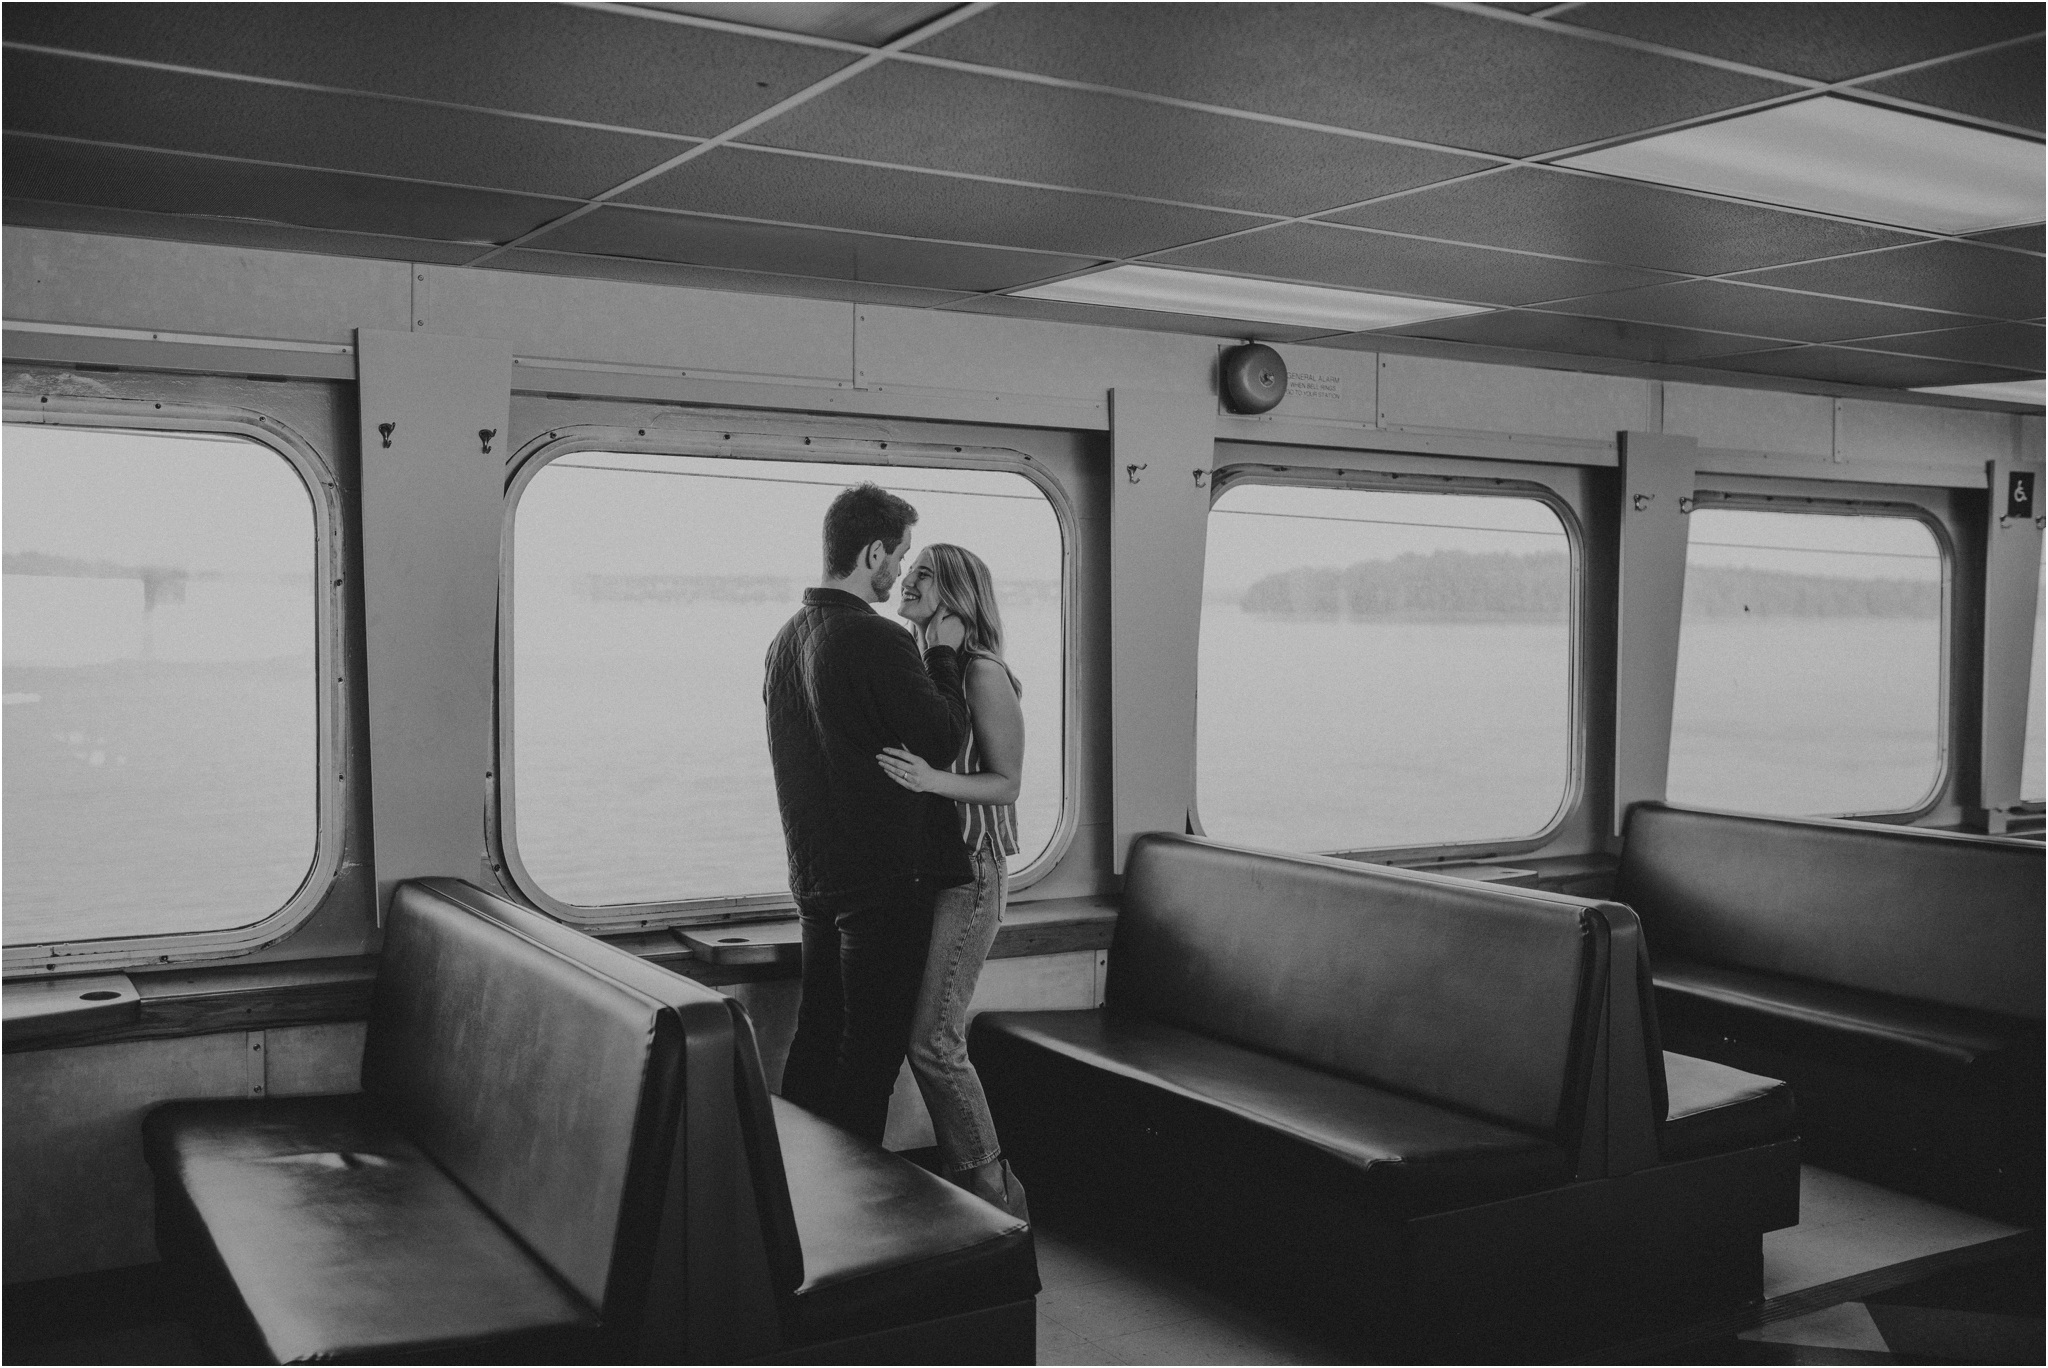 rile-and-ryan-fauntleroy-ferry-vashon-island-seattle-engagement-session-006.jpg